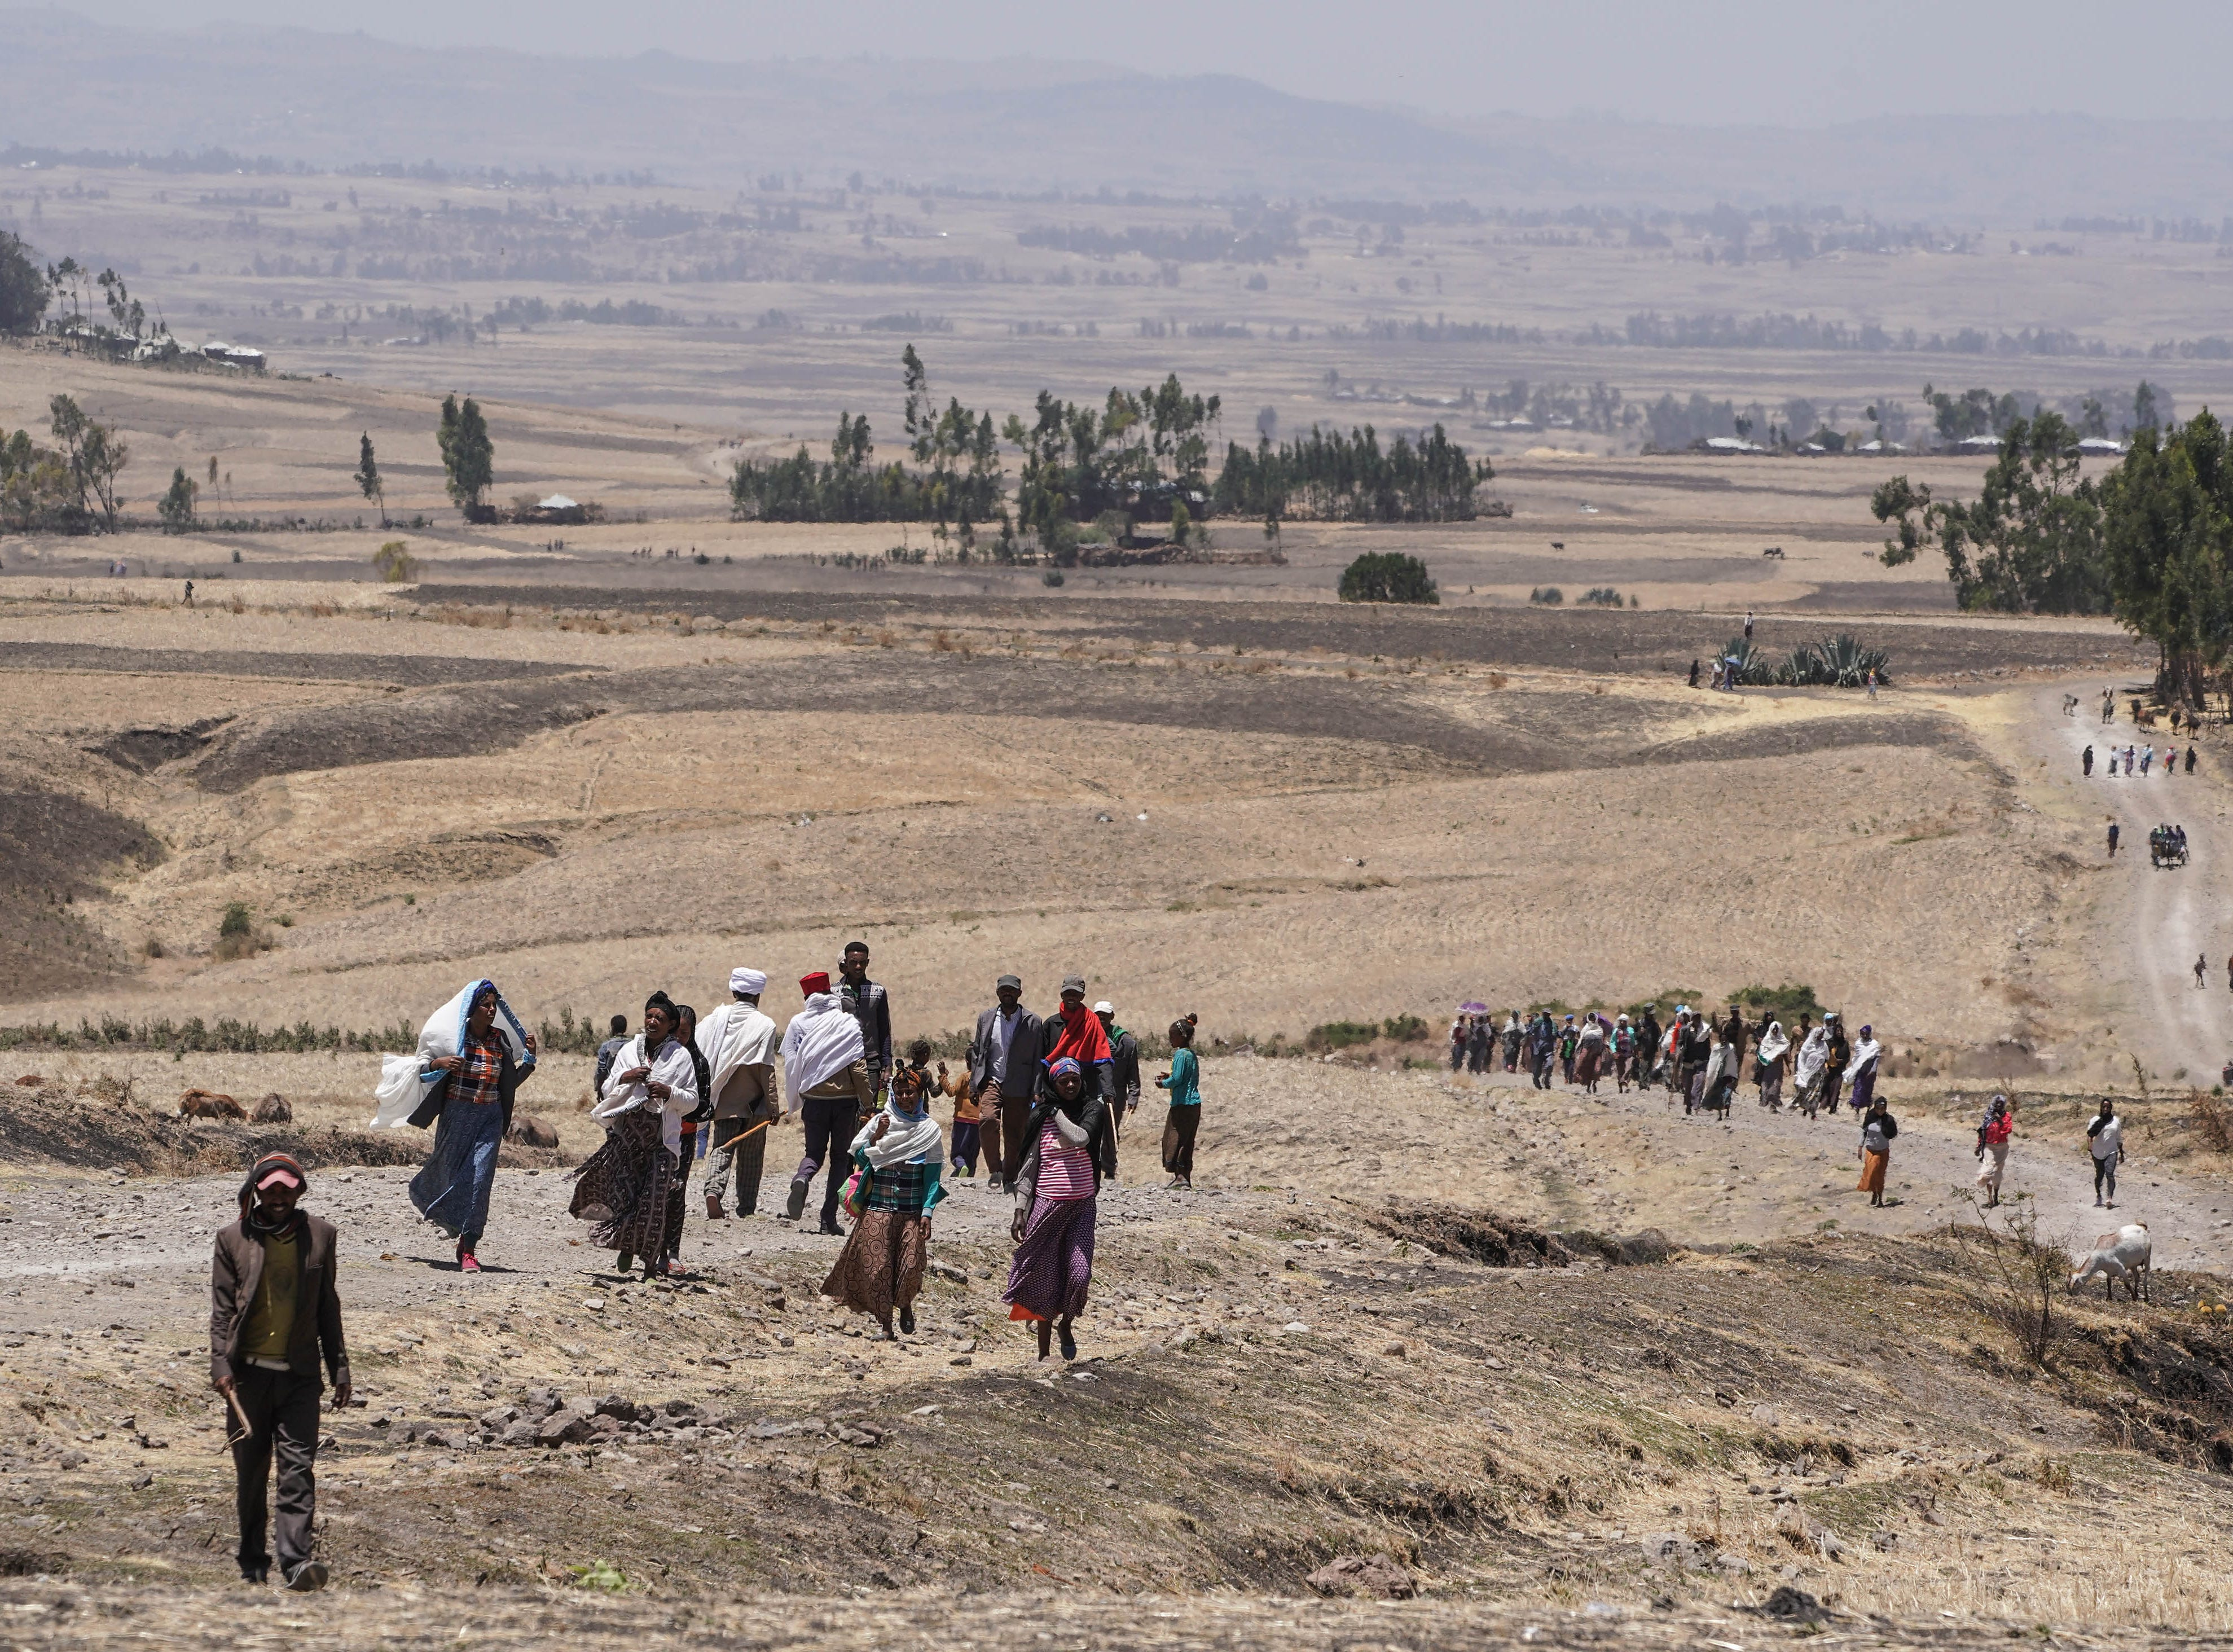 Local villagers from the area surrounding Ejere walk for miles to attend the Asrahhullet or Tulluferra ceremony on March 21, 2019 in Ejere, Ethiopia.  In the Ethiopian Orthodox church tradition the Asrahhullet or Tulluferra Ceremony marks the 12th day since the passing of a member of the community.  People from the various hamlets and villages around Ejere came together to pay respects to the 157 souls who perished in the crash of Ethiopian Airlines flight 302 which crashed on March 10, 2019.